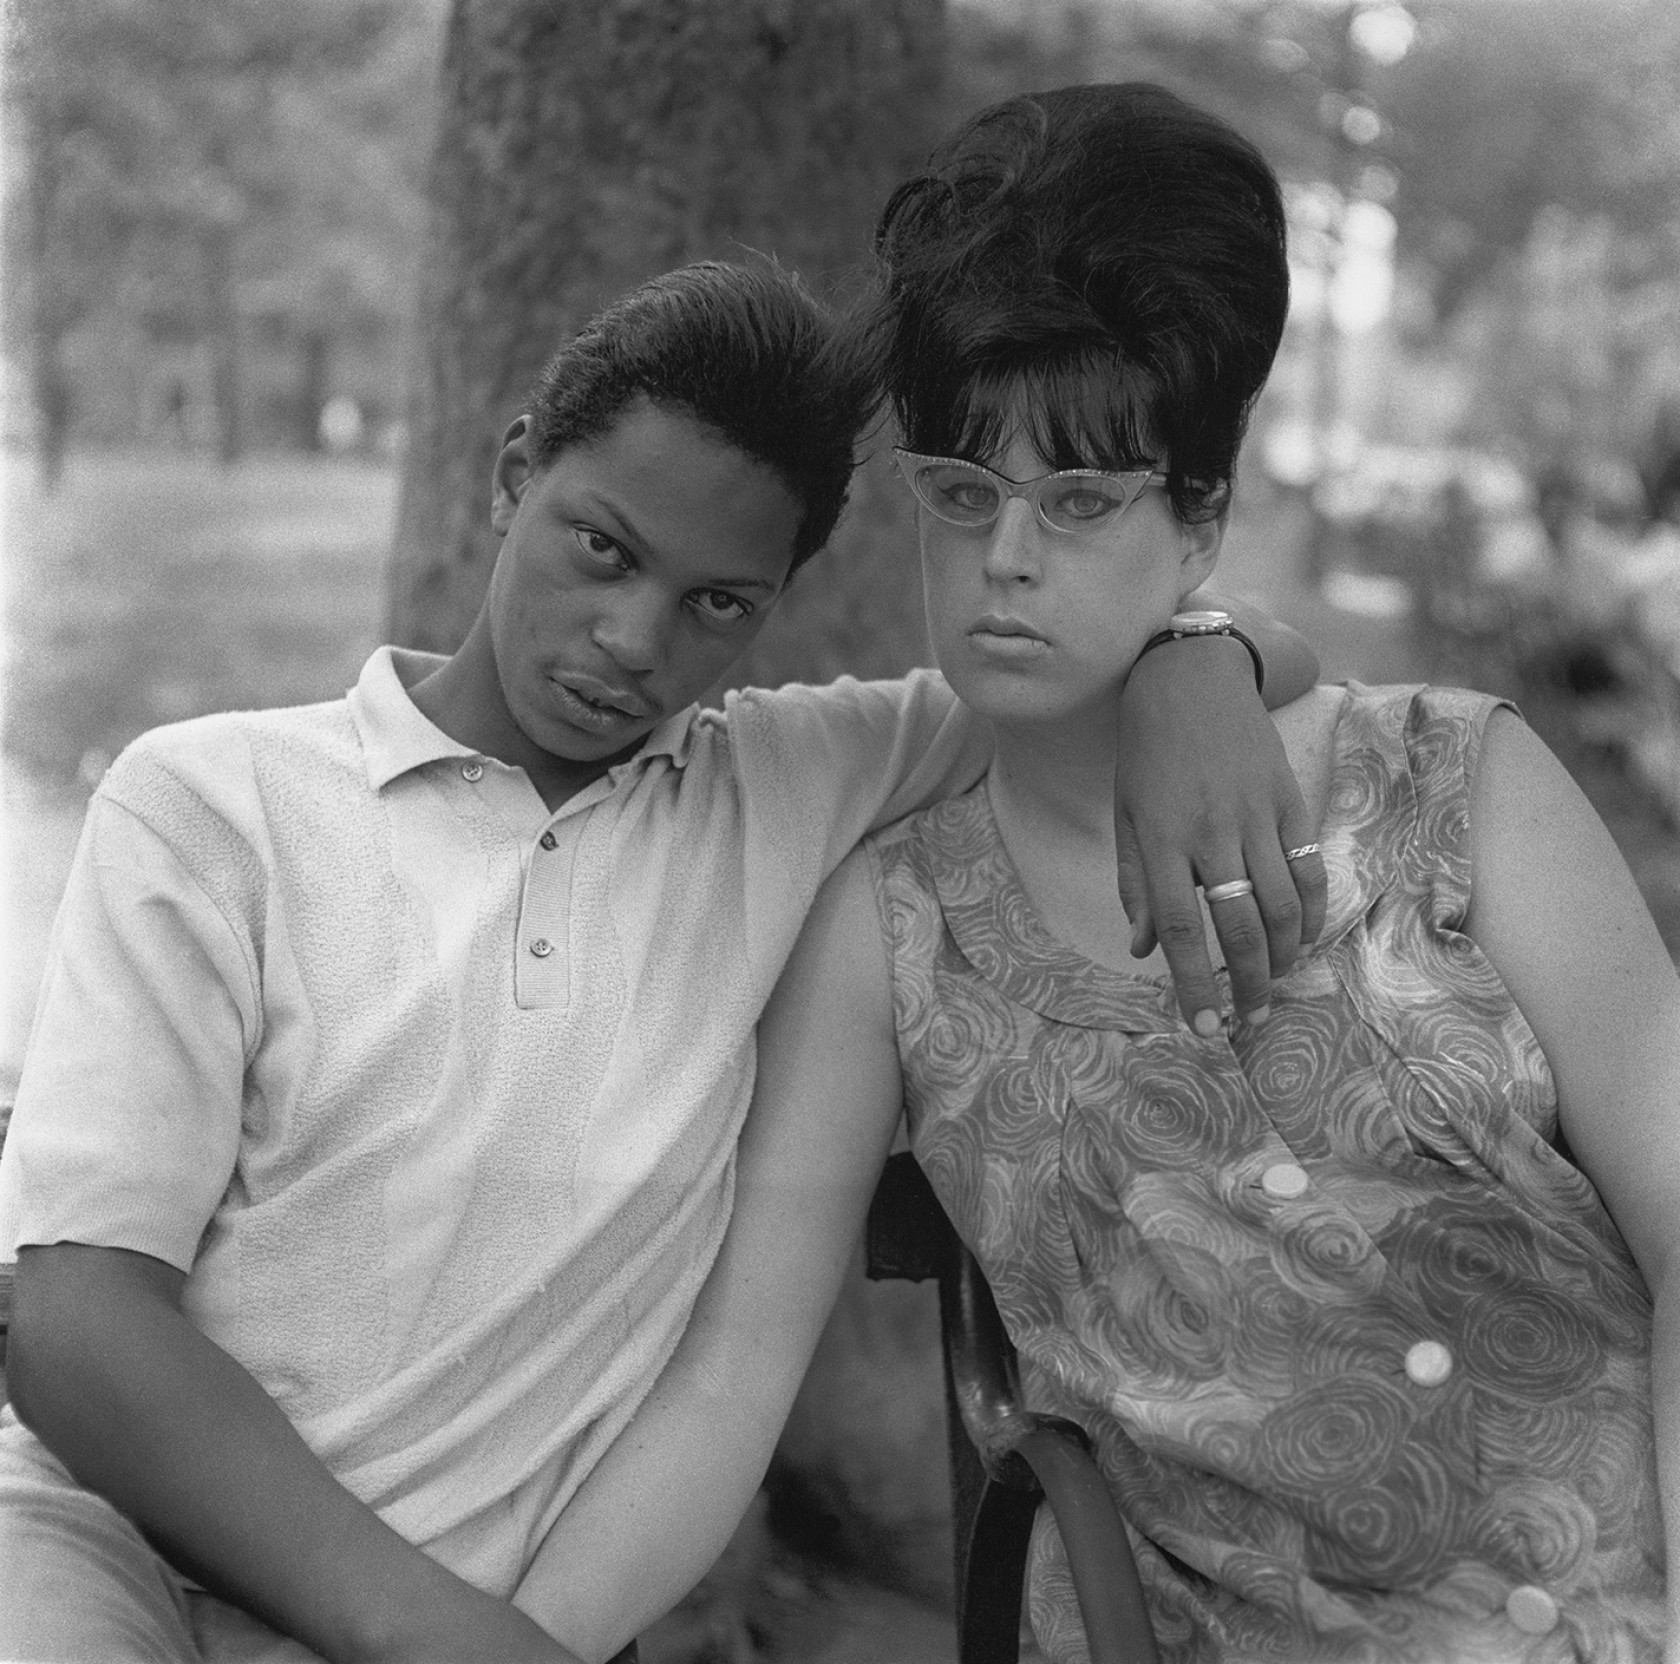 Diane Arbus, A young man and his pregnant wife in Washington Square Park, N.Y.C. 1965